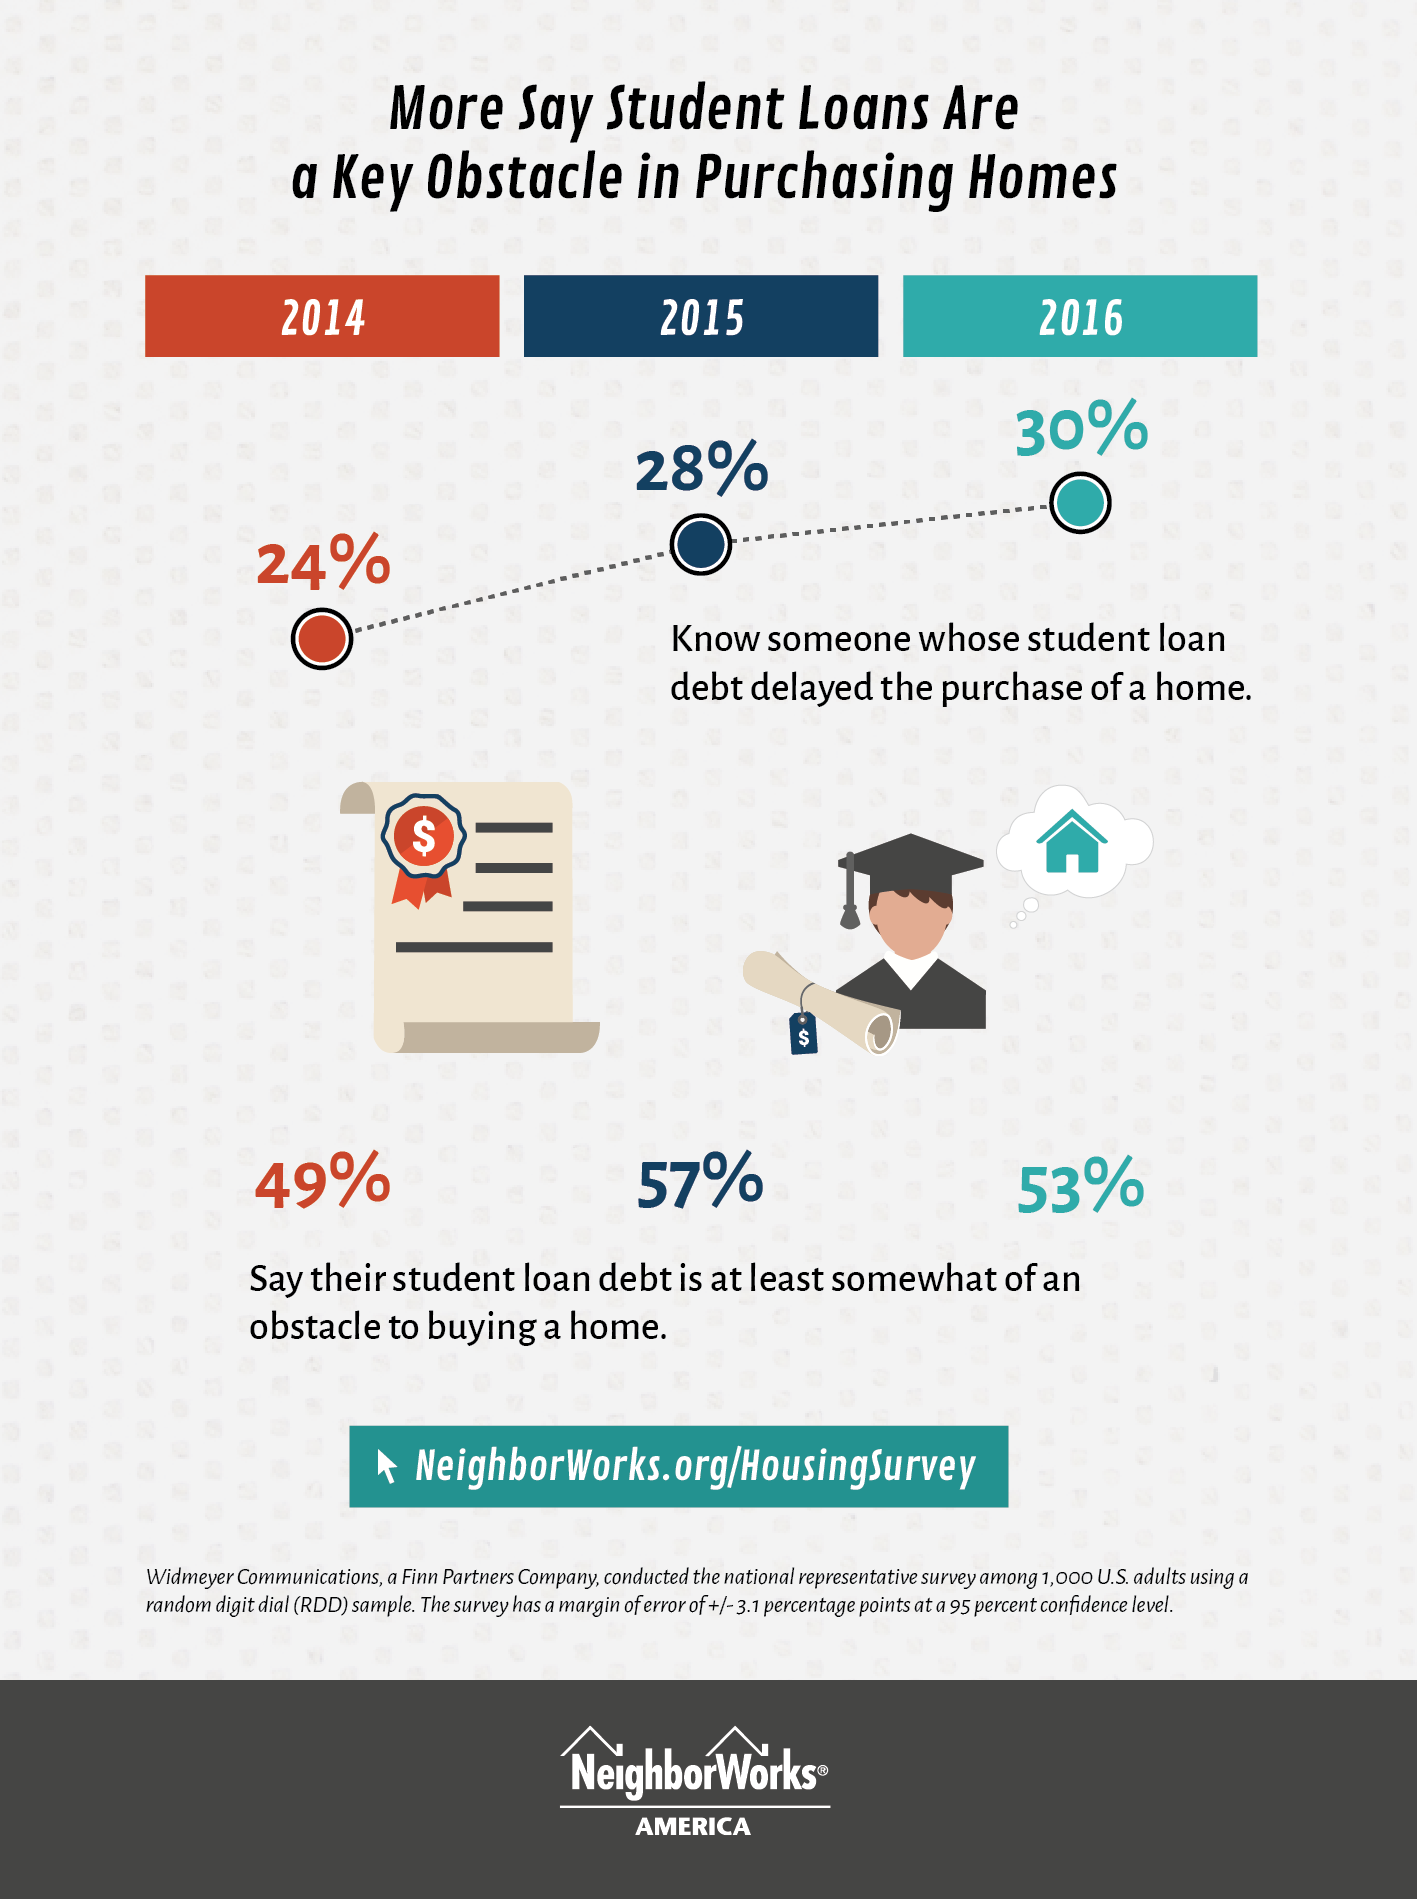 More say student loans are a key obst...